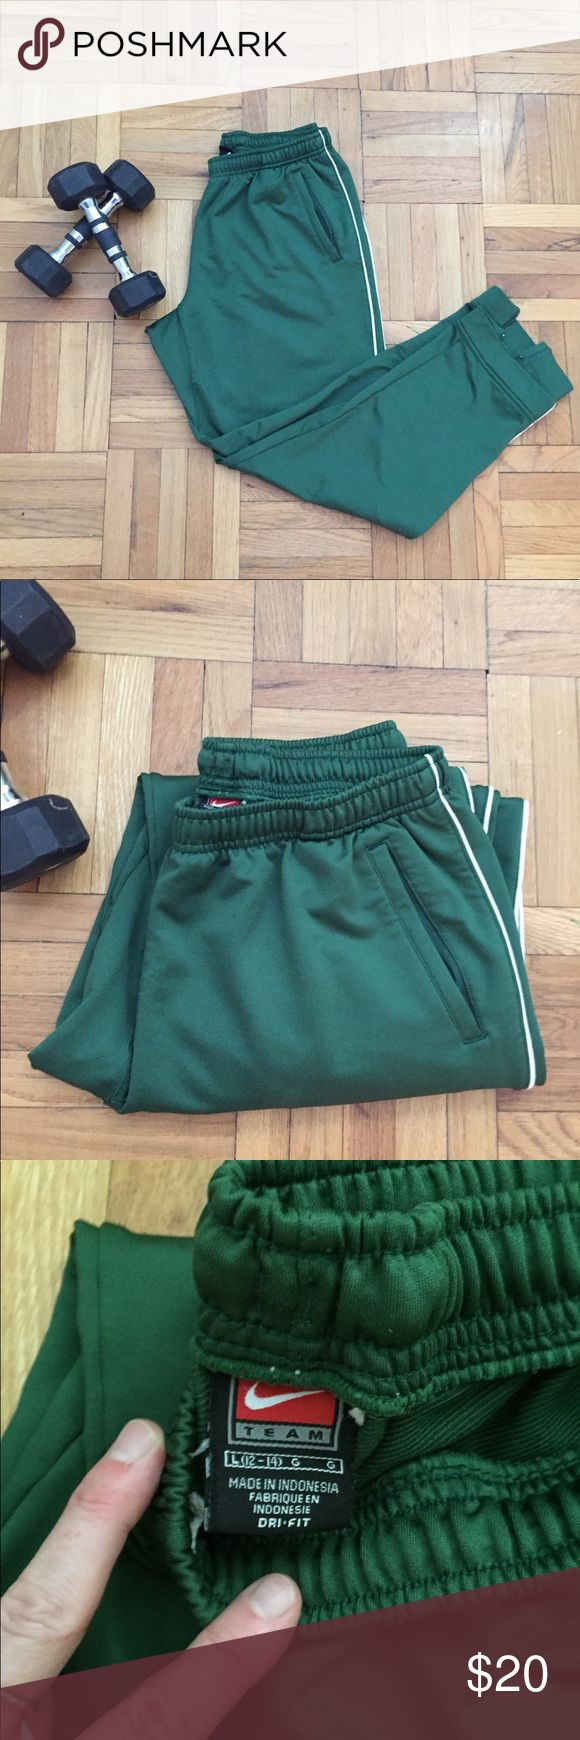 Nike warm-up pants Nike warm-up pants in forest green with a thin white stripe down the outer leg. Nike check embroidered on bottom of left leg. Ankle zippers for ease of taking off with athletic shoes on. Drawstring waist. Inseam is 29 inches. Great quality, like new. Perfect to wear over athletic shorts while you warm up before a work out or game. Size large. Nike Pants Track Pants & Joggers